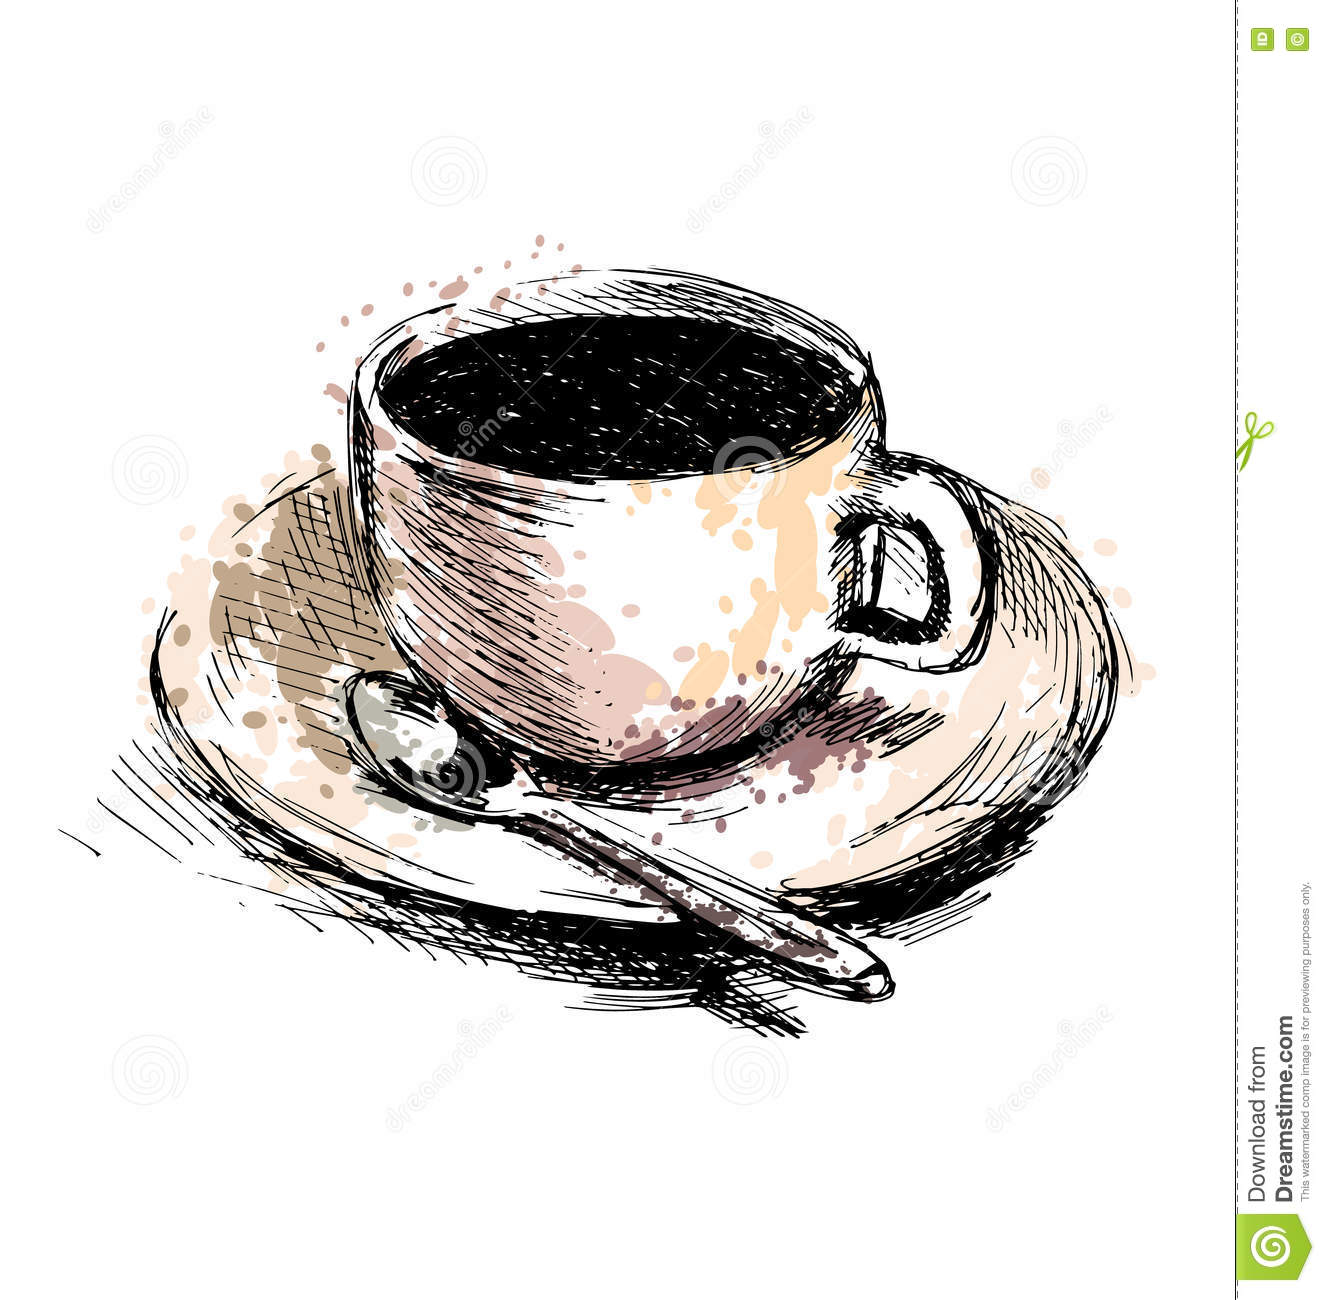 Coffee cup sketch - Royalty Free Vector Download Colored Hand Drawing Coffee Cup